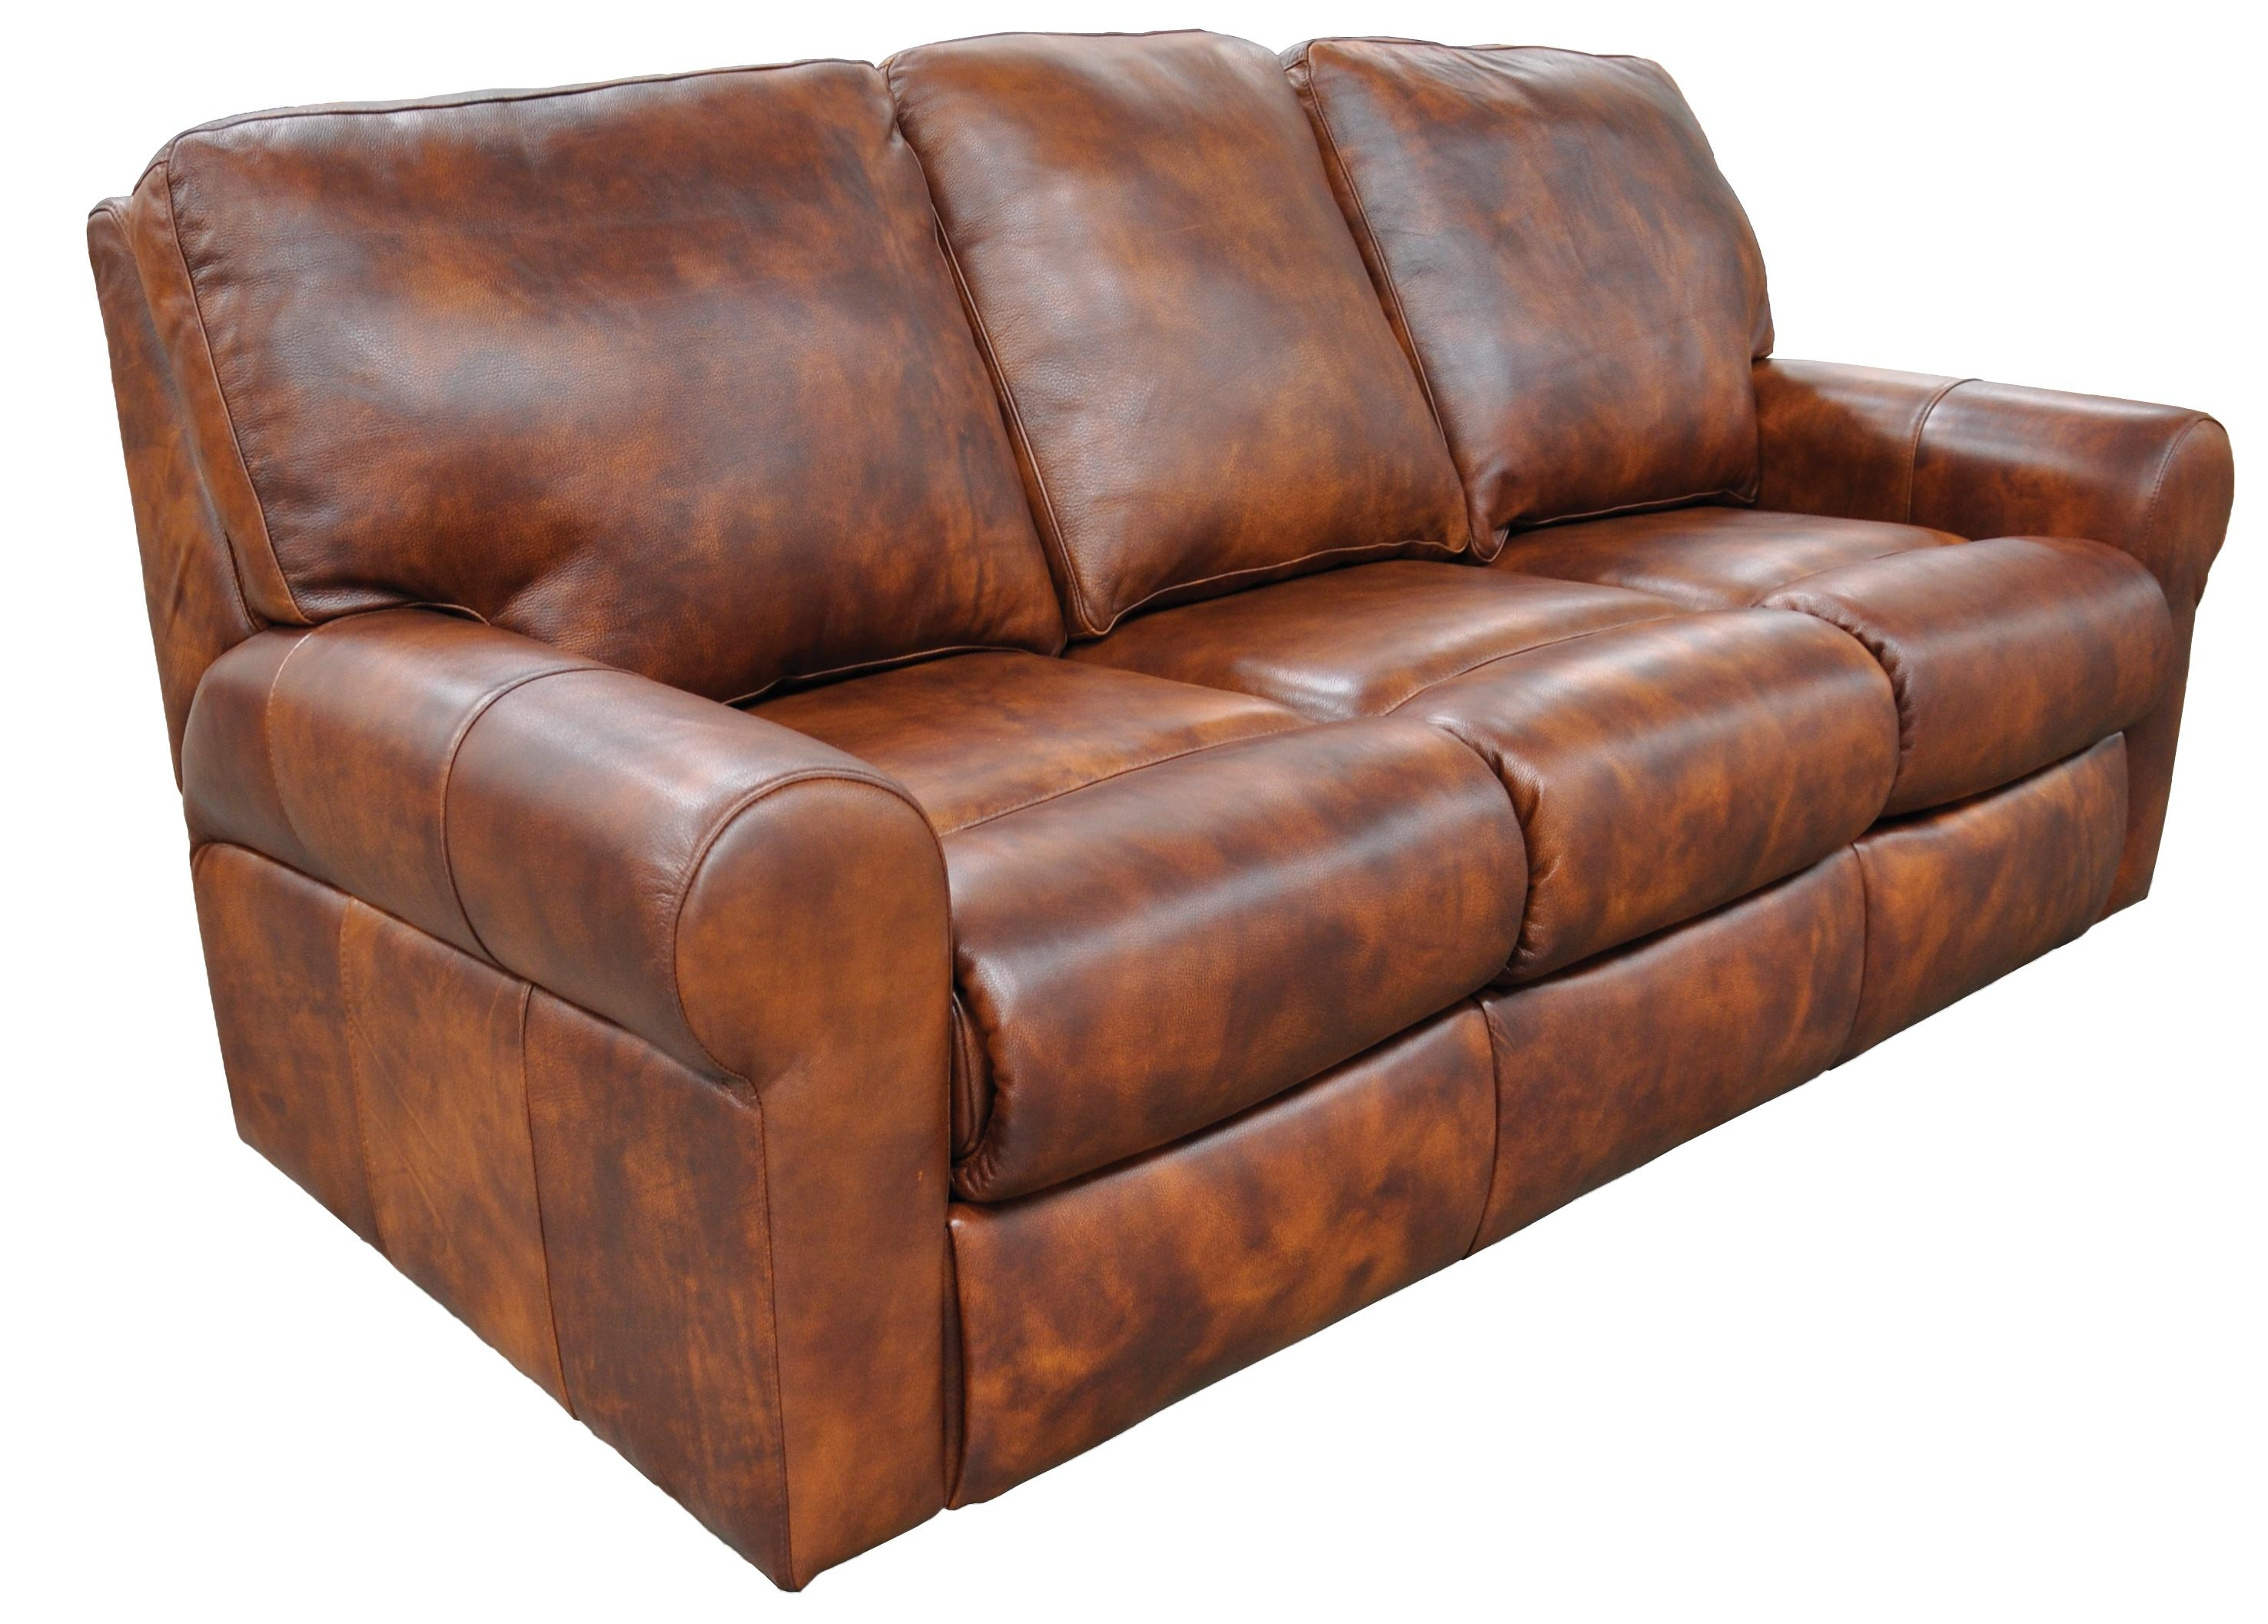 Sofa Sleepers Piedmont Leather Furniture |Texas Leather For Piedmont Sofas (View 13 of 20)